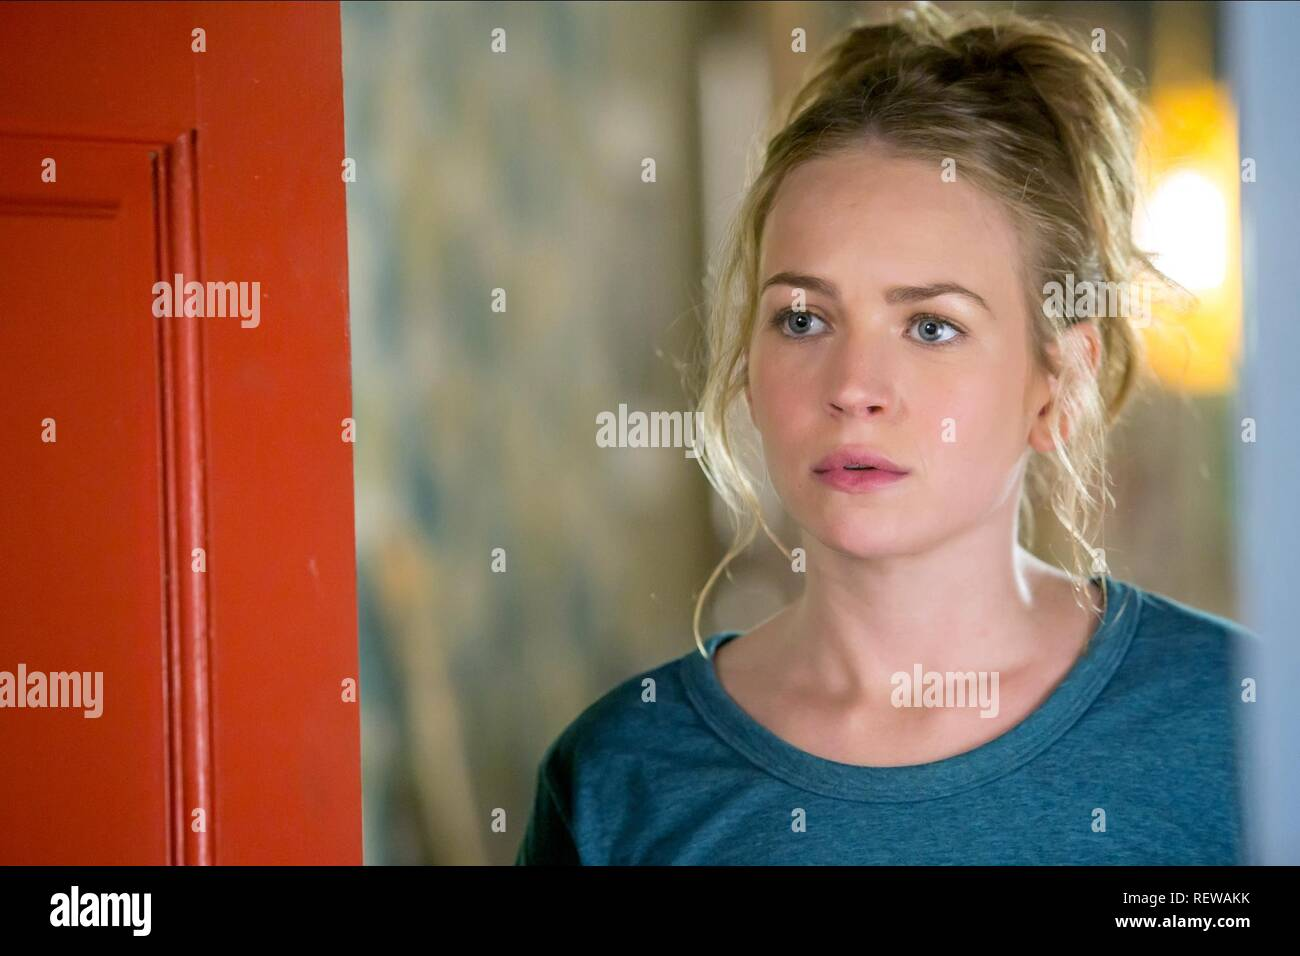 BRITT ROBERTSON MOTHER'S DAY (2016) - Stock Image